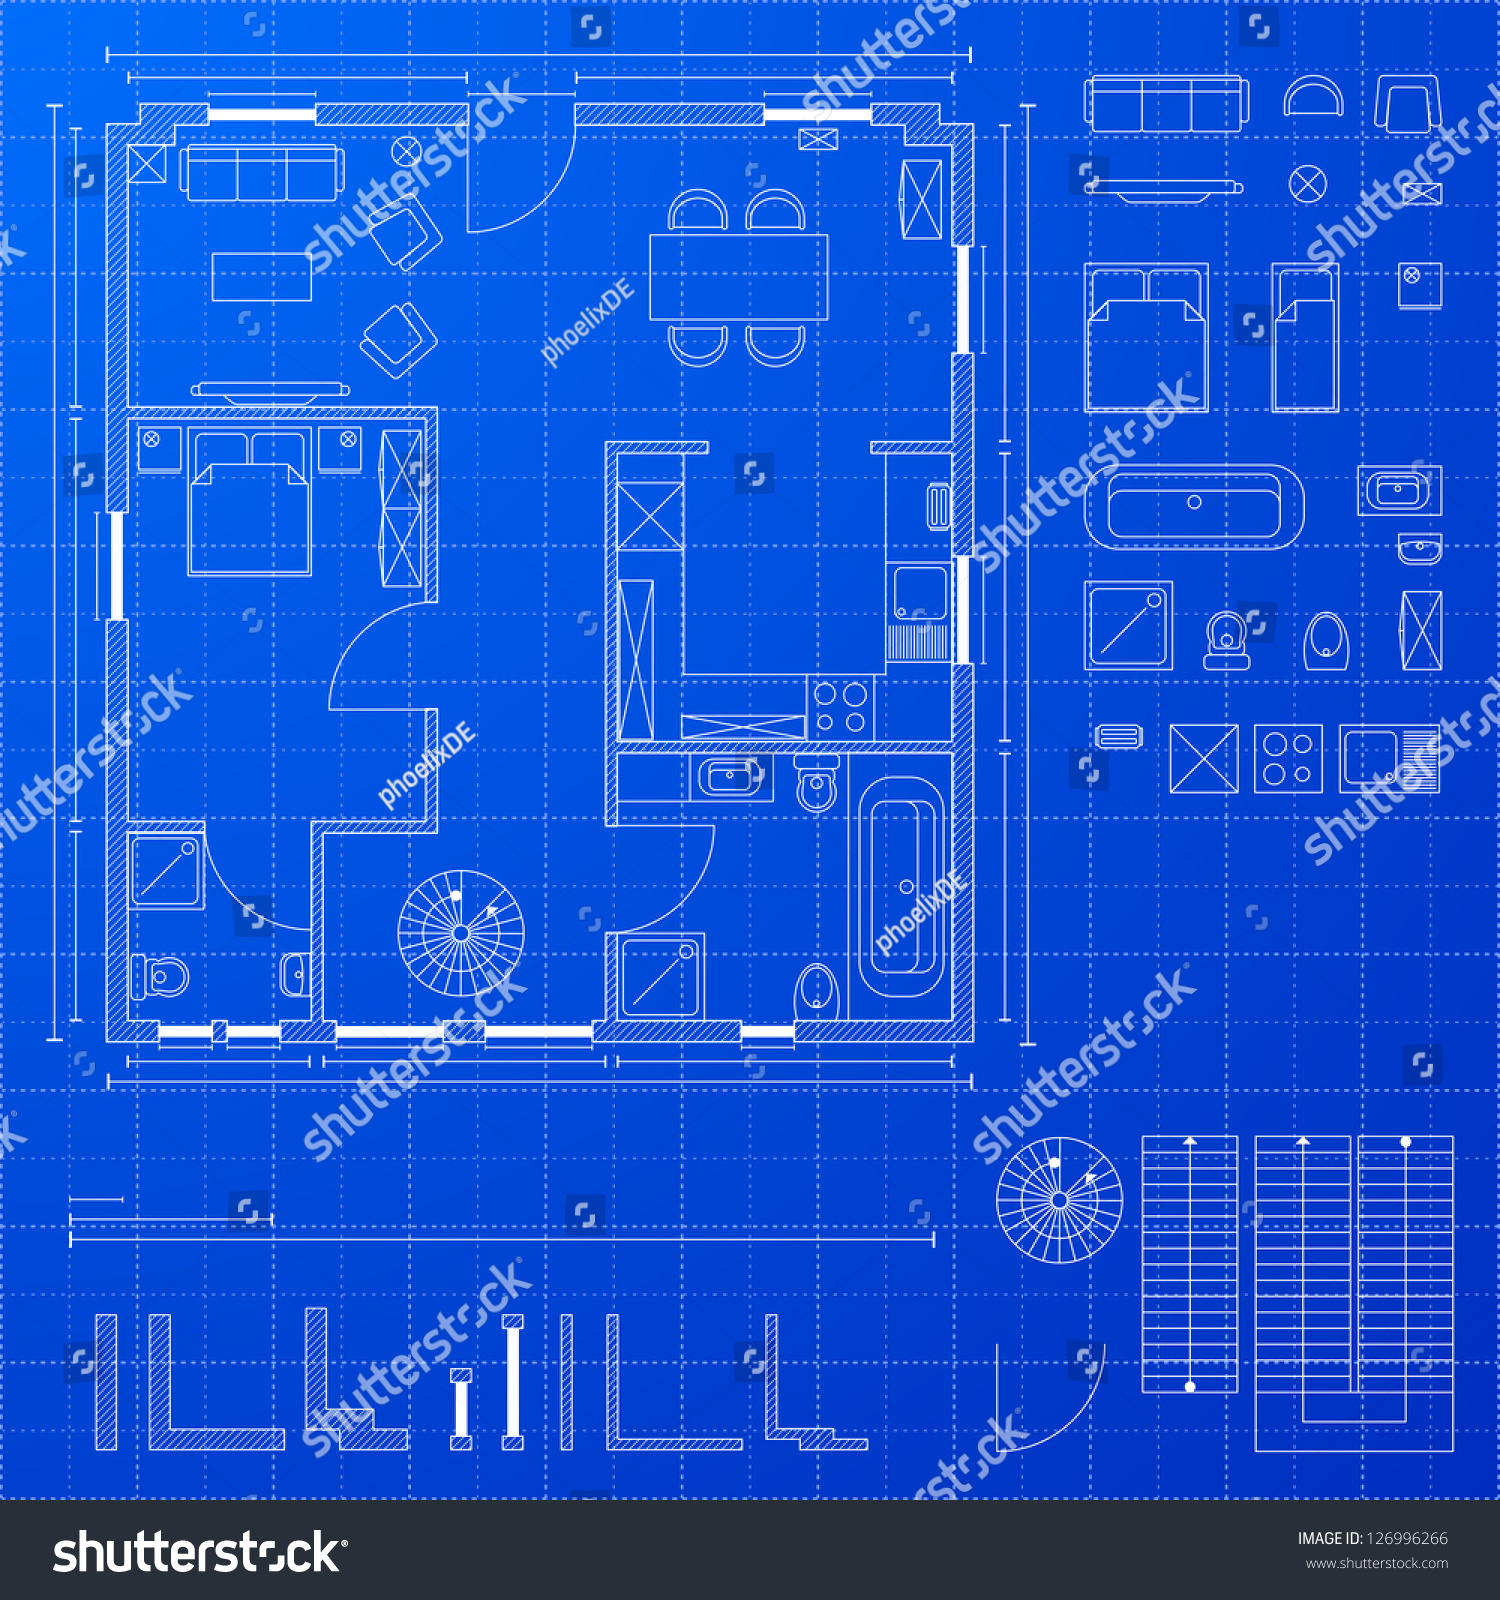 Detailed Illustration Blueprint Floorplan Various Design Stock Vector 126996266 Shutterstock